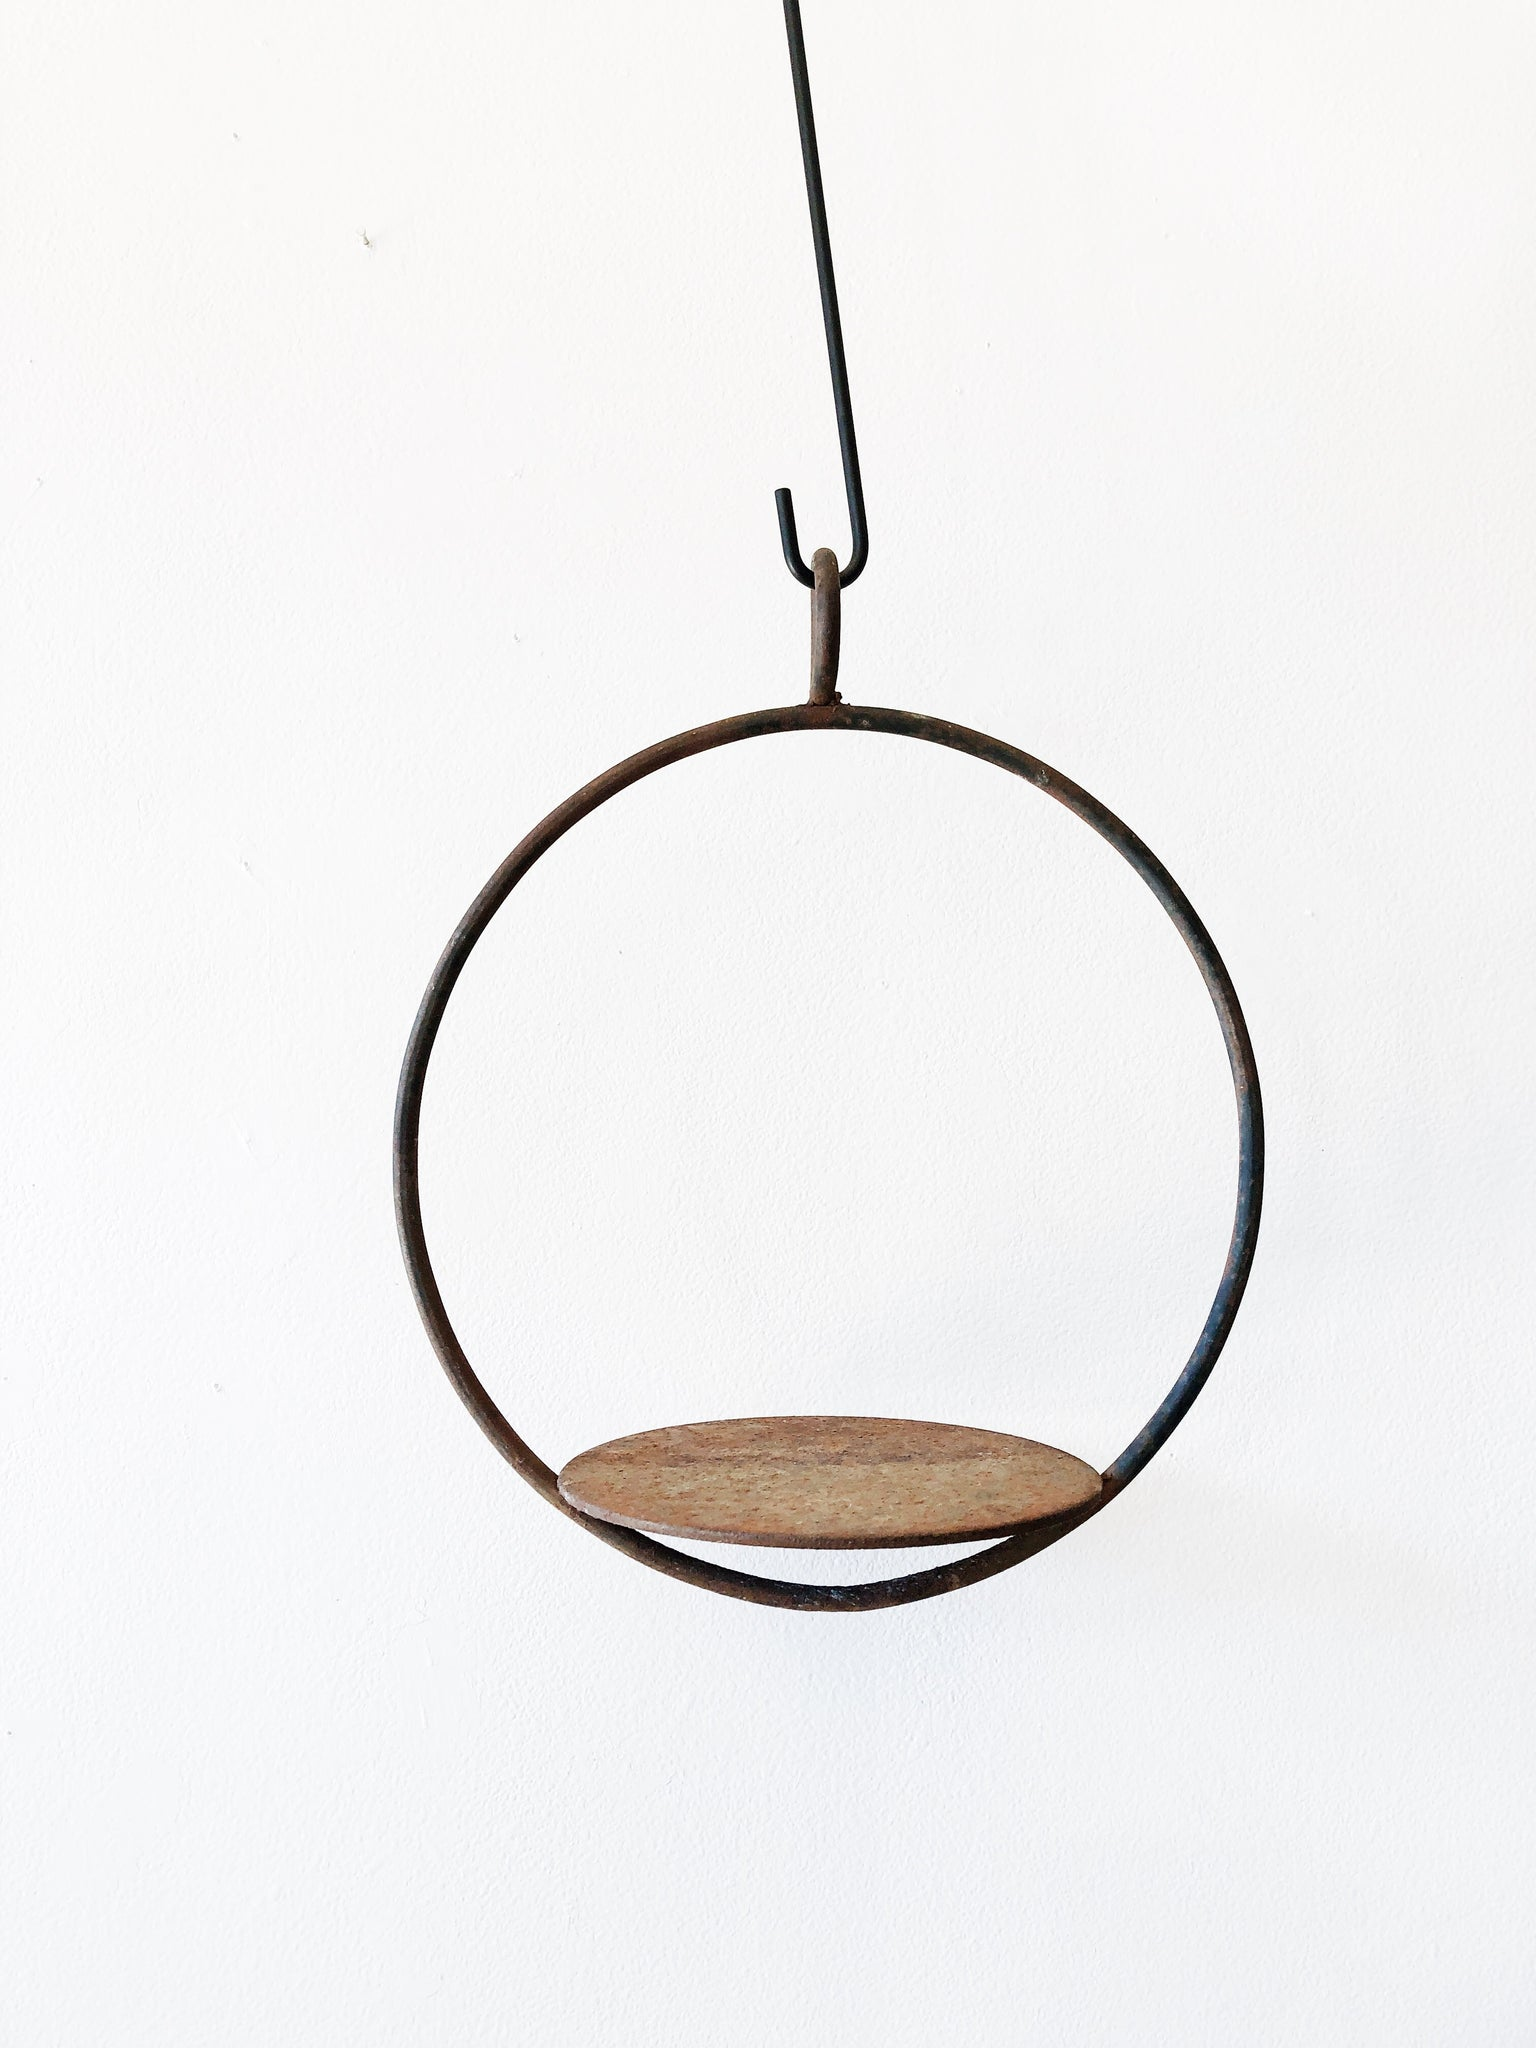 Vintage Cast Iron Circular Hanging Shelf